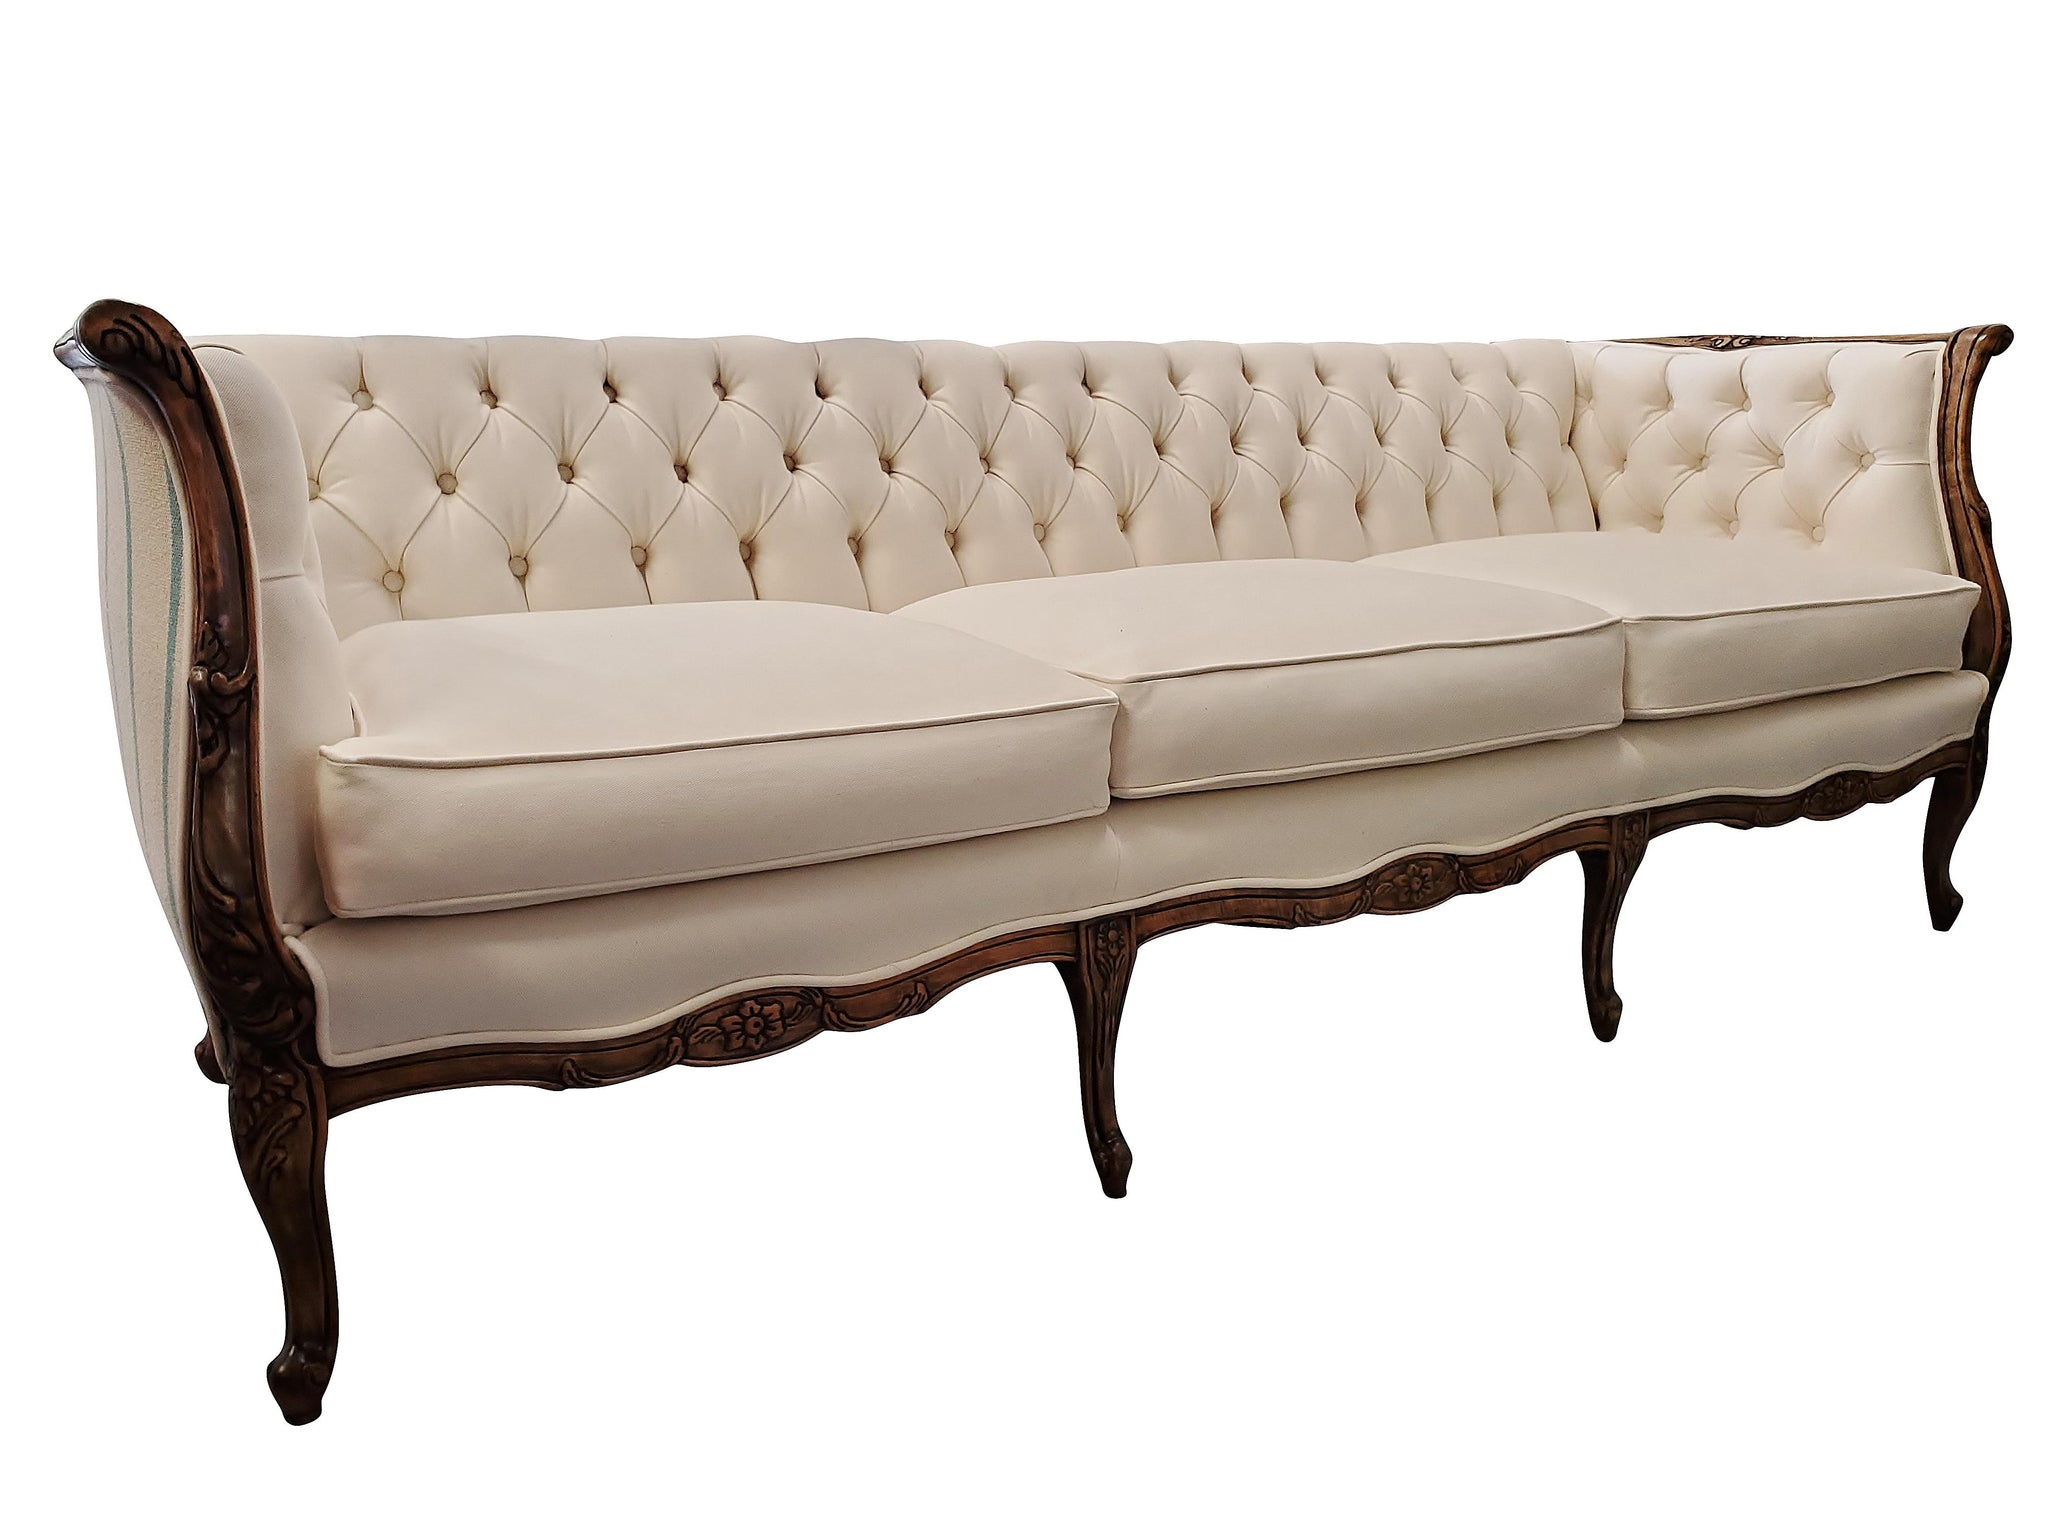 Carved Antique French Style Tufted Sofa hero